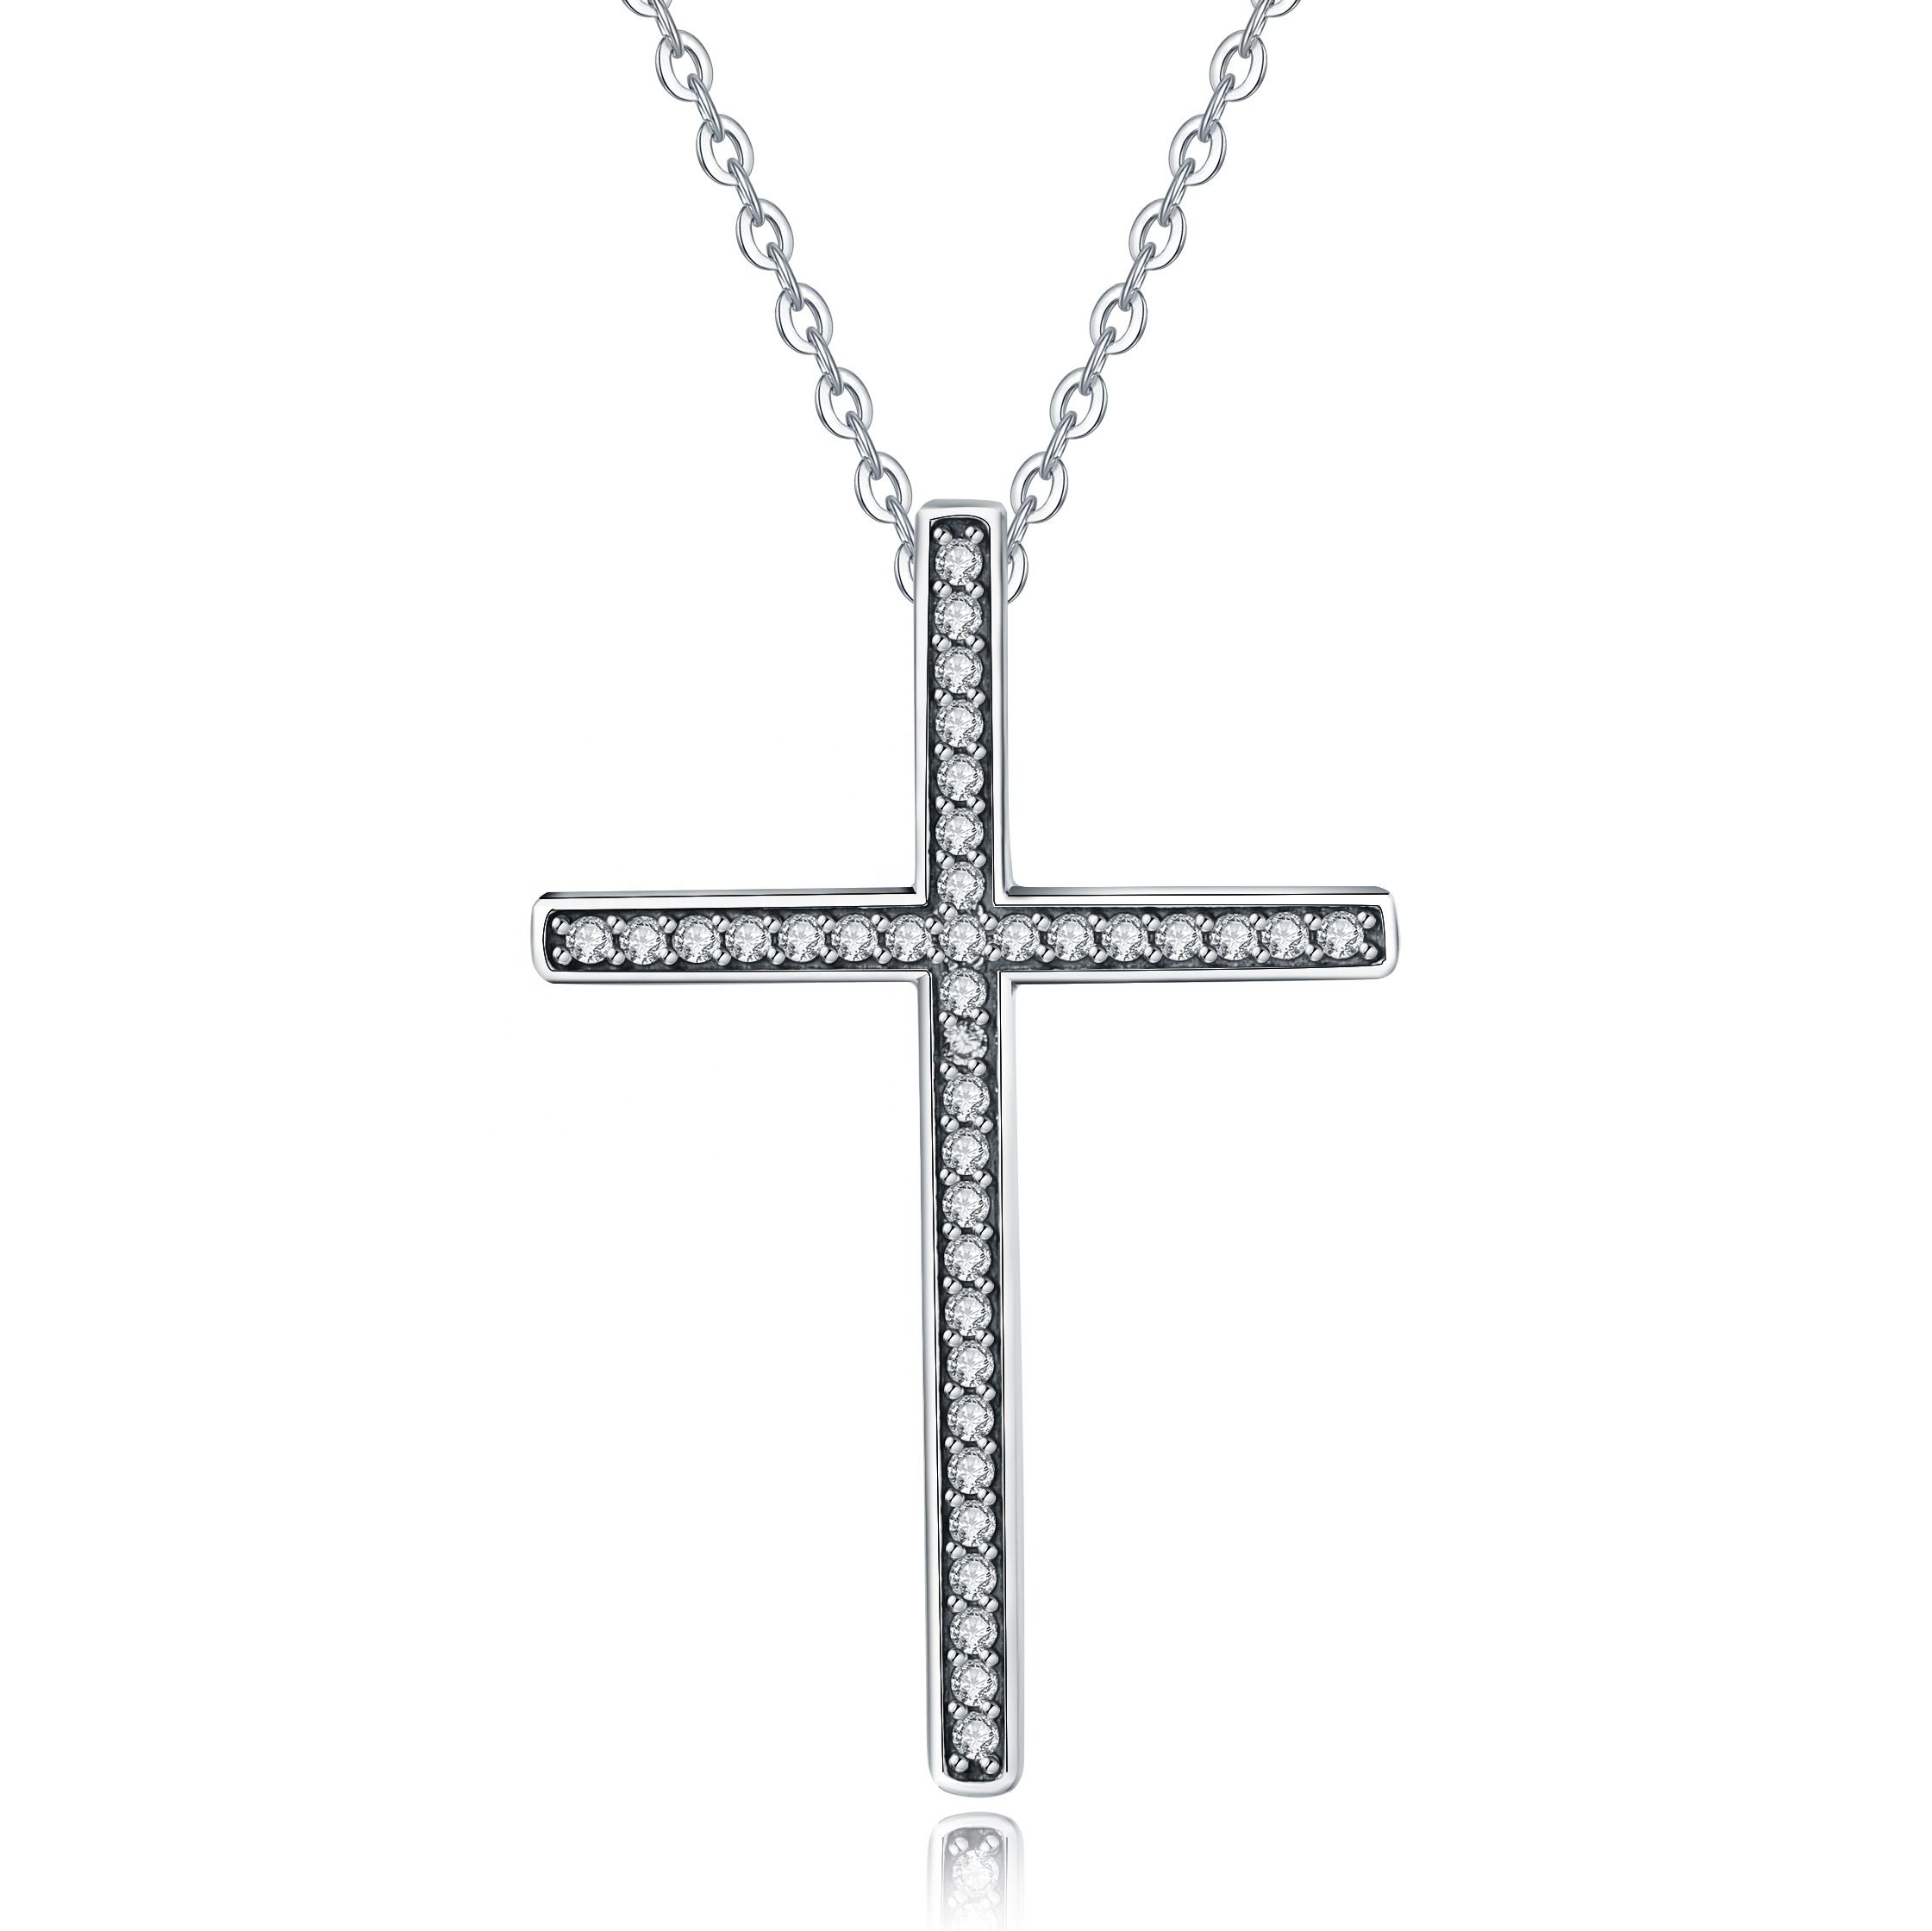 925 argent sterling bling simple <span class=keywords><strong>jérusalem</strong></span> zircon croix pendentif collier